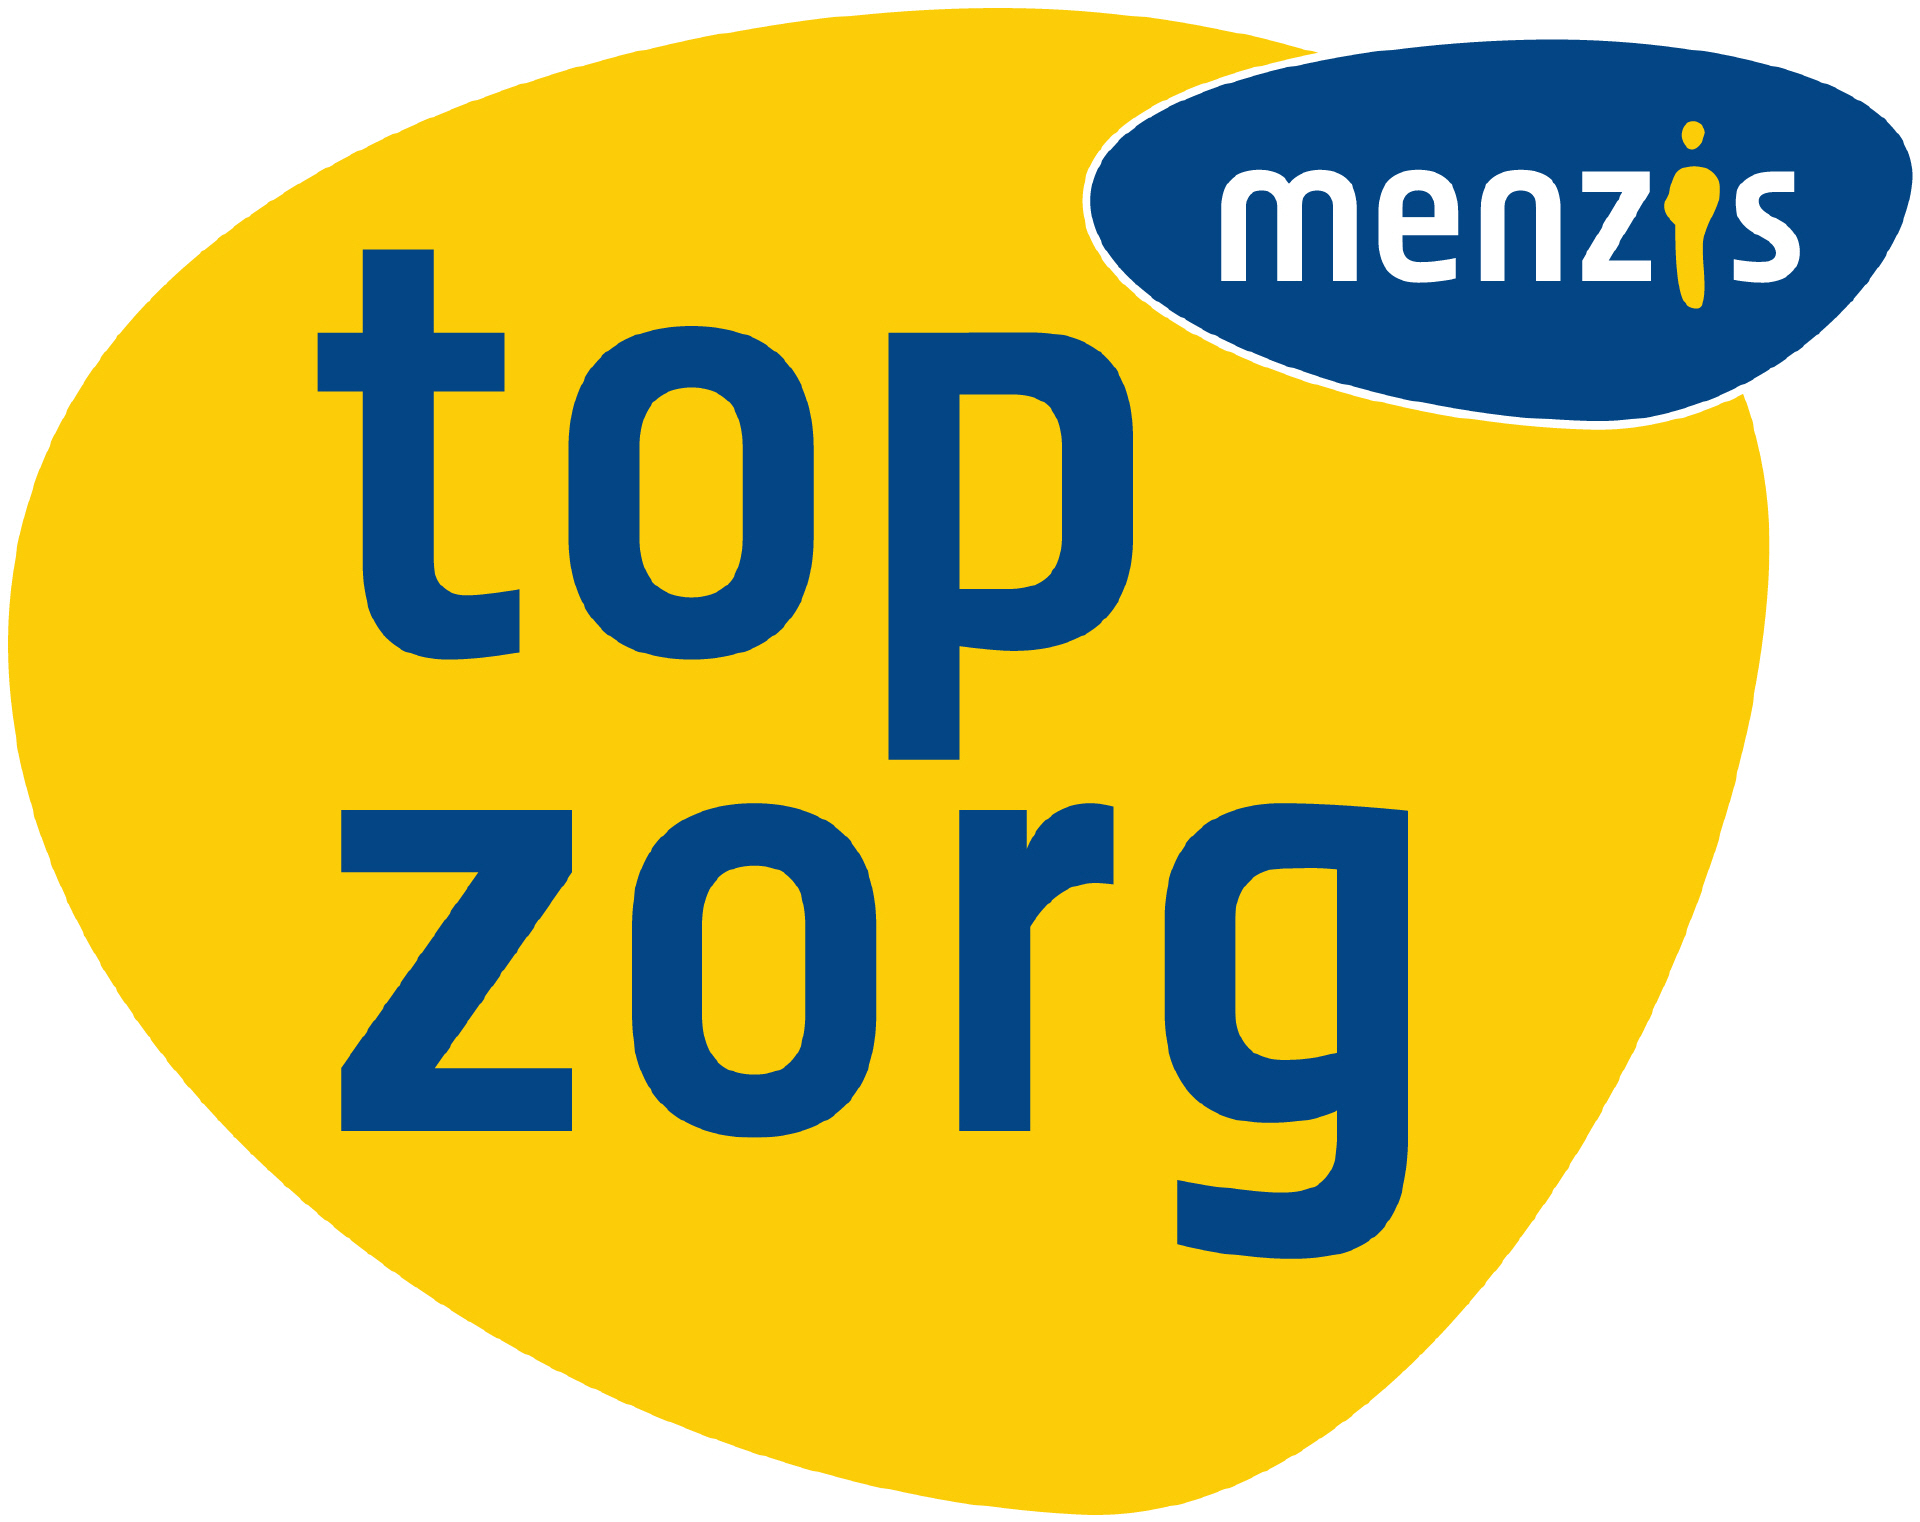 Fysiotherapie en Manuele Therapie Baat - topzorg menzis